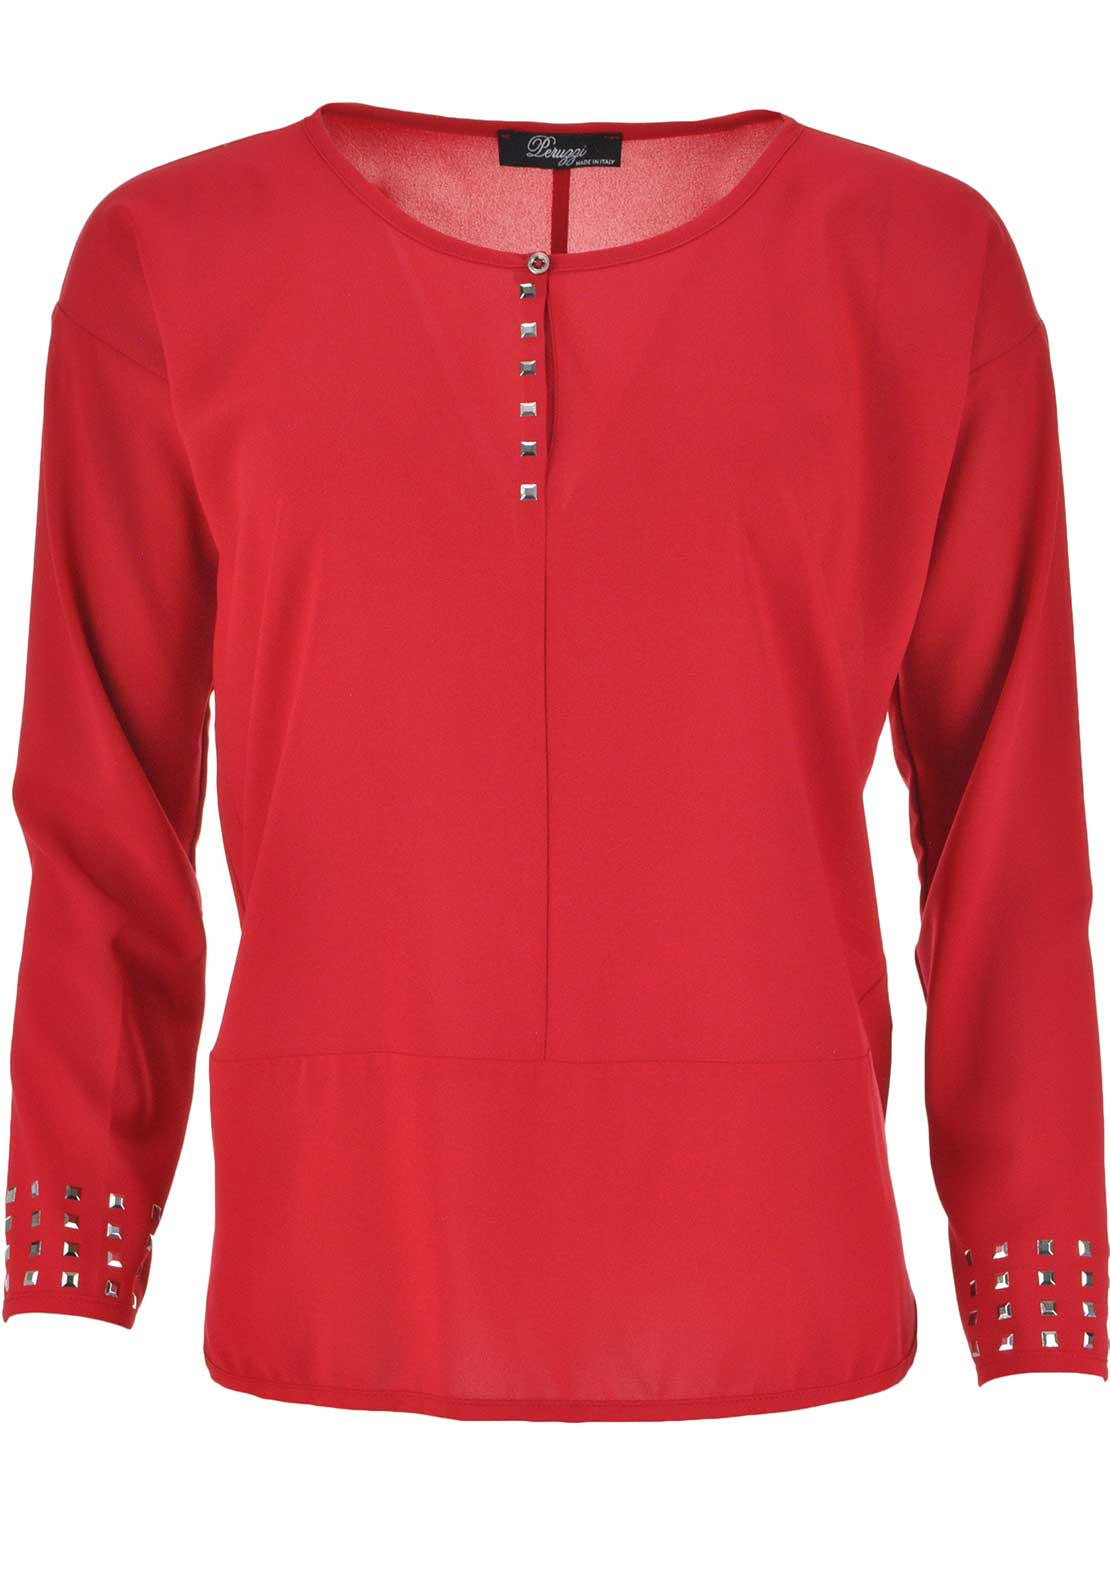 Peruzzi Rhinestone Embellished Long Sleeve Top, Red